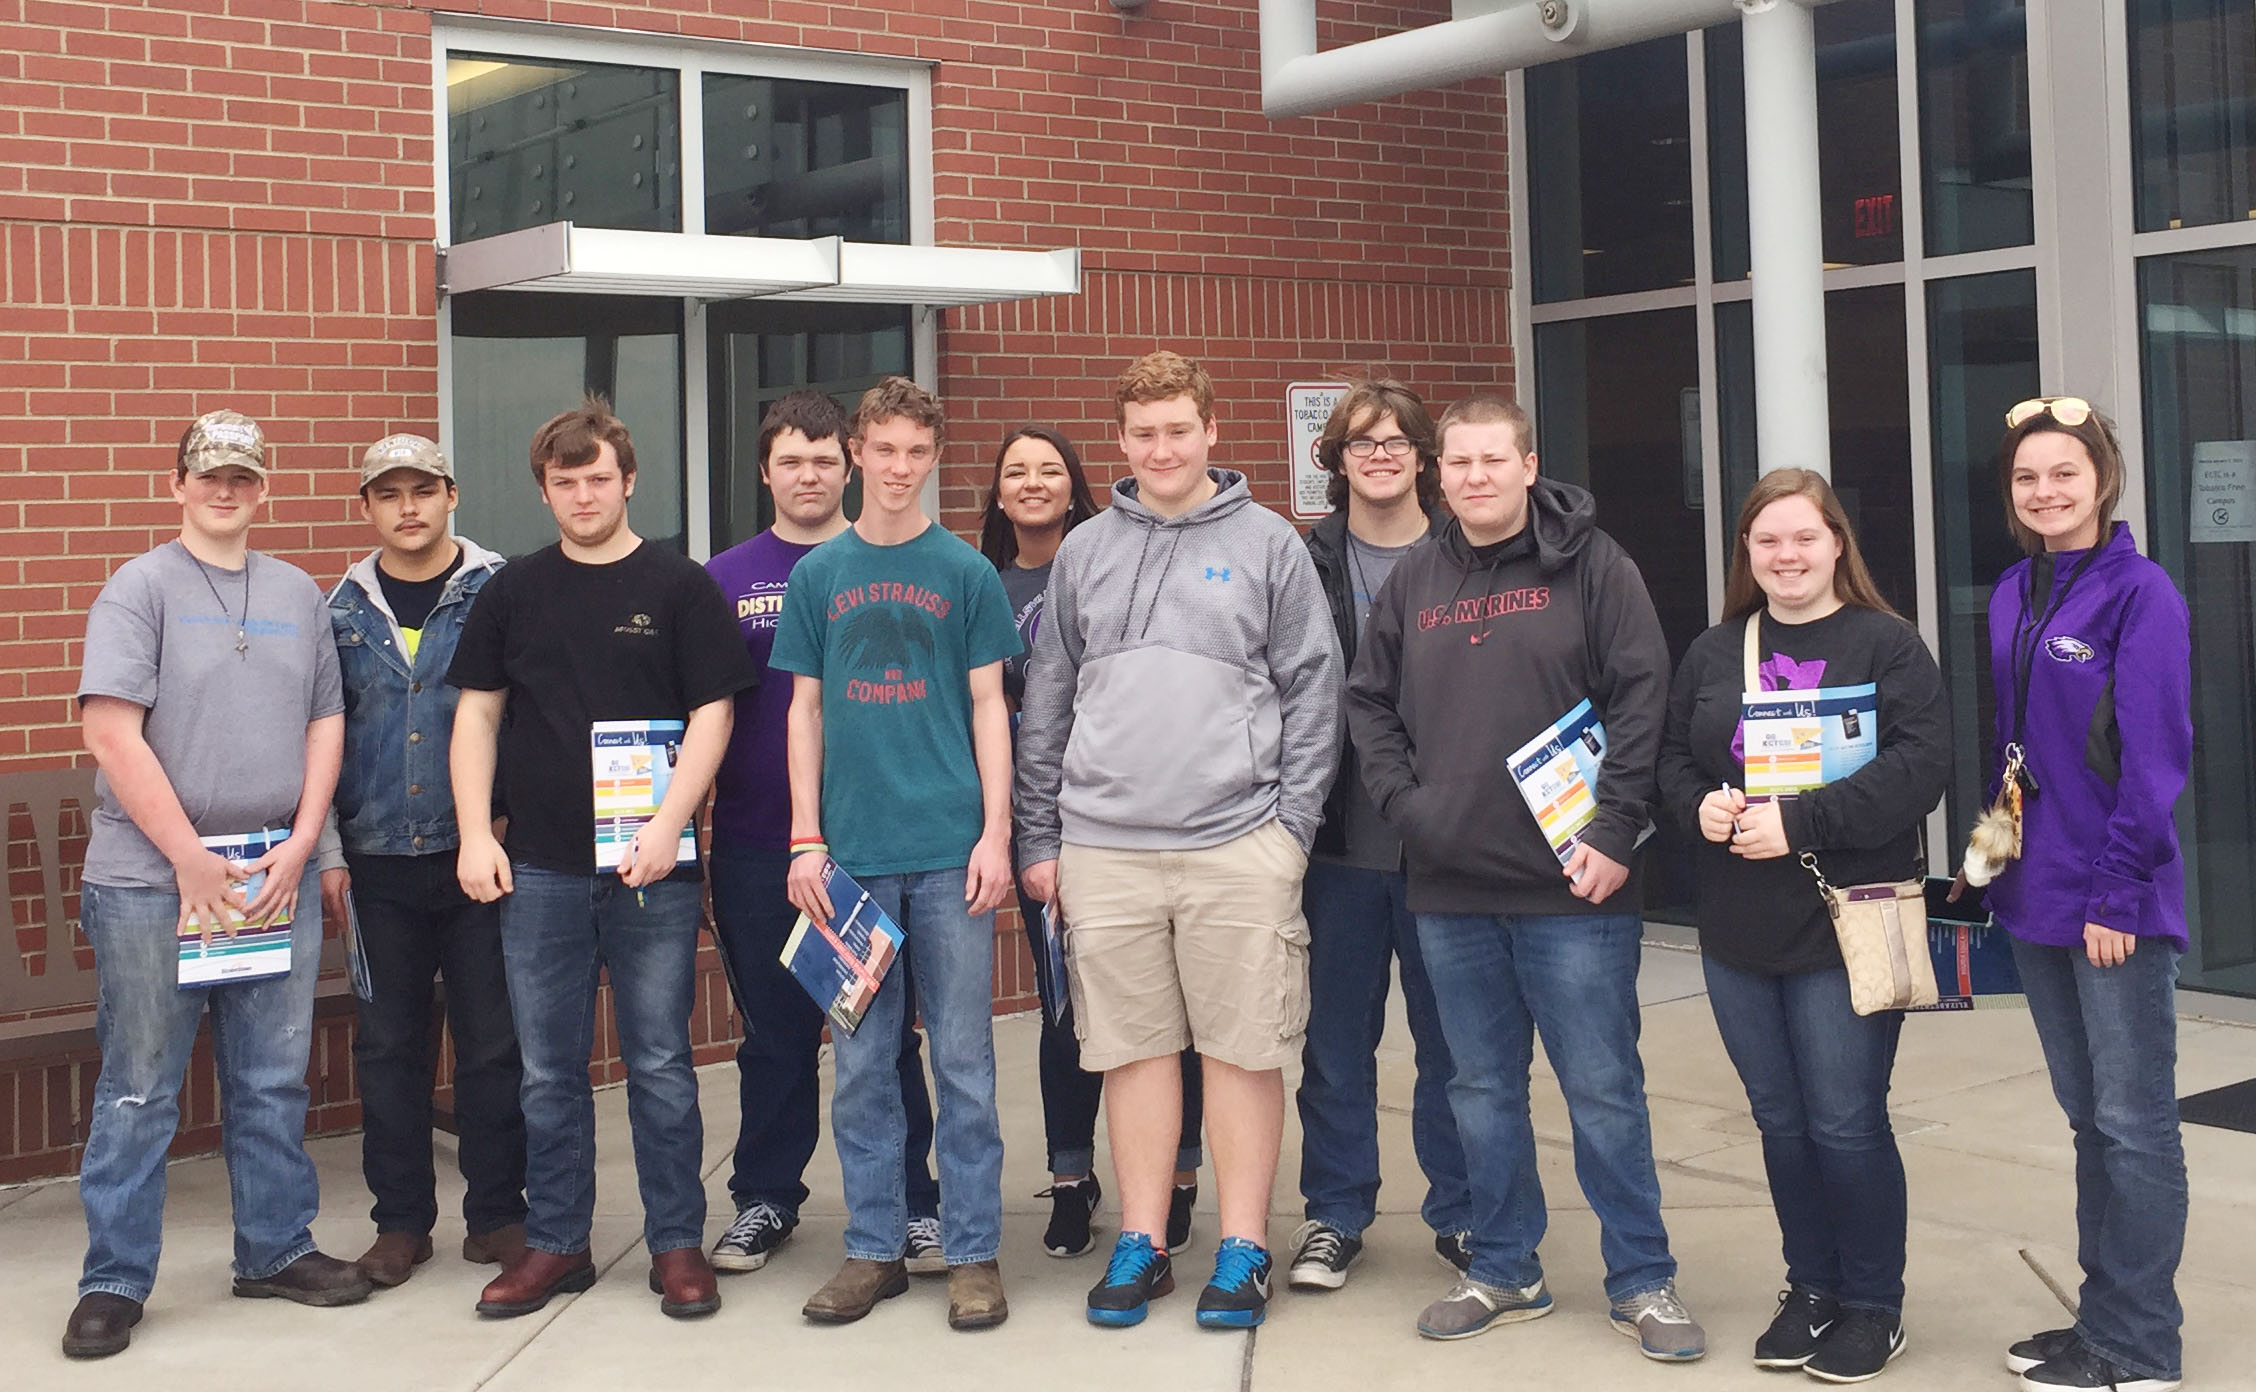 Campbellsville High School students recently visited the Elizabethtown Community & Technical College campus in Springfield. From left are sophomores Quentin Skaggs, Nick Cowan, Cody Cox, Jorden Perkins and Payton Reynolds, senior Kailey Morris, sophomores Spencer Swafford, John Netherland and Devin Pike and seniors Madison Lewis and Kyrsten Hill.